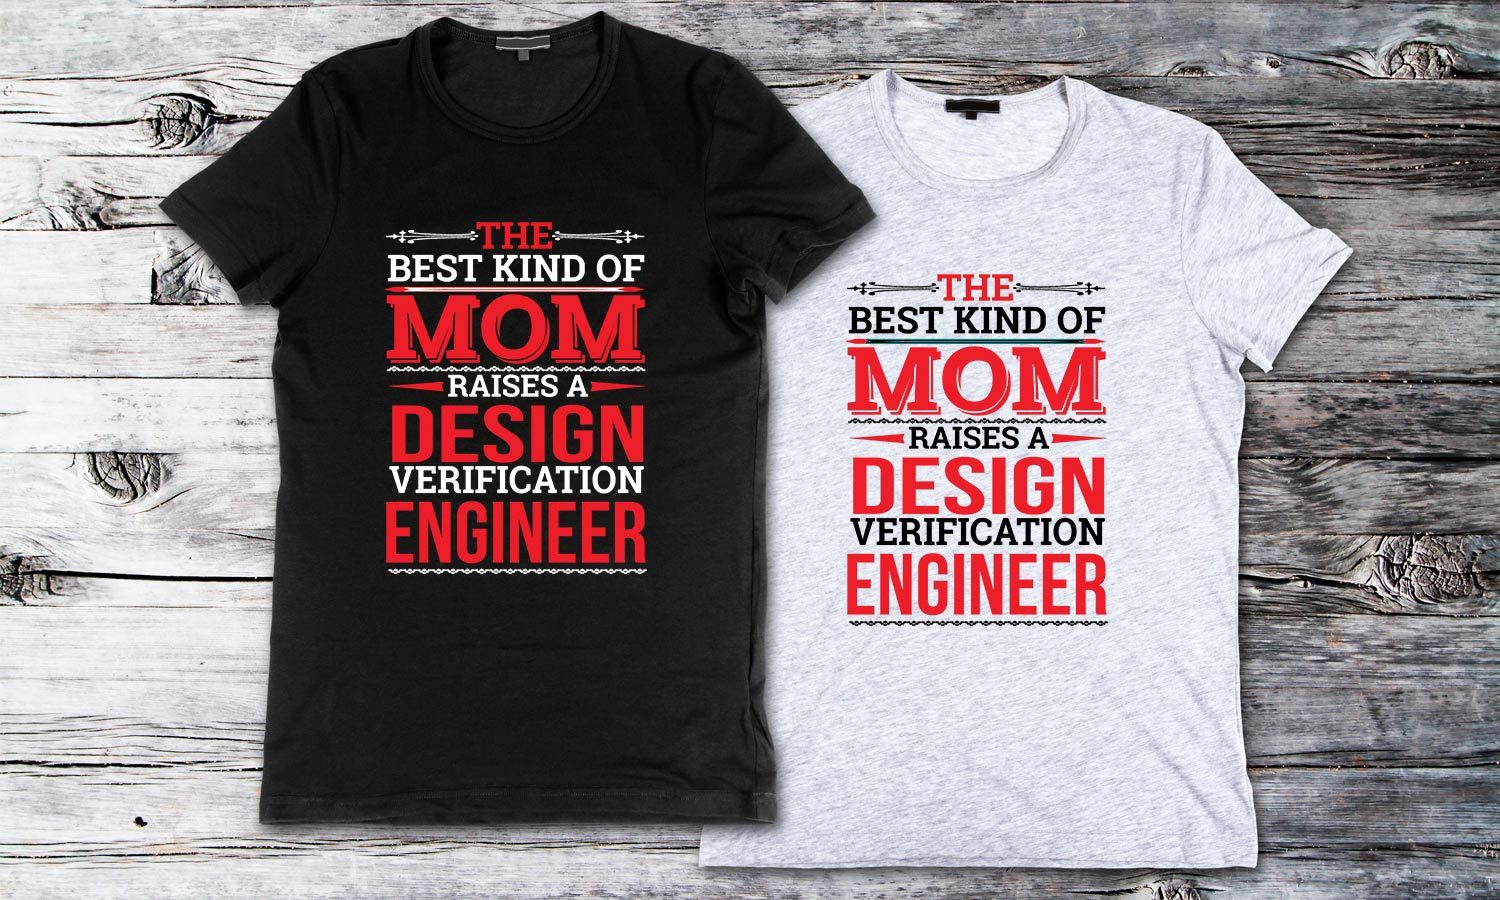 Best Kind Mom - Printed T-Shirt for Men, Women and Kids - TS167